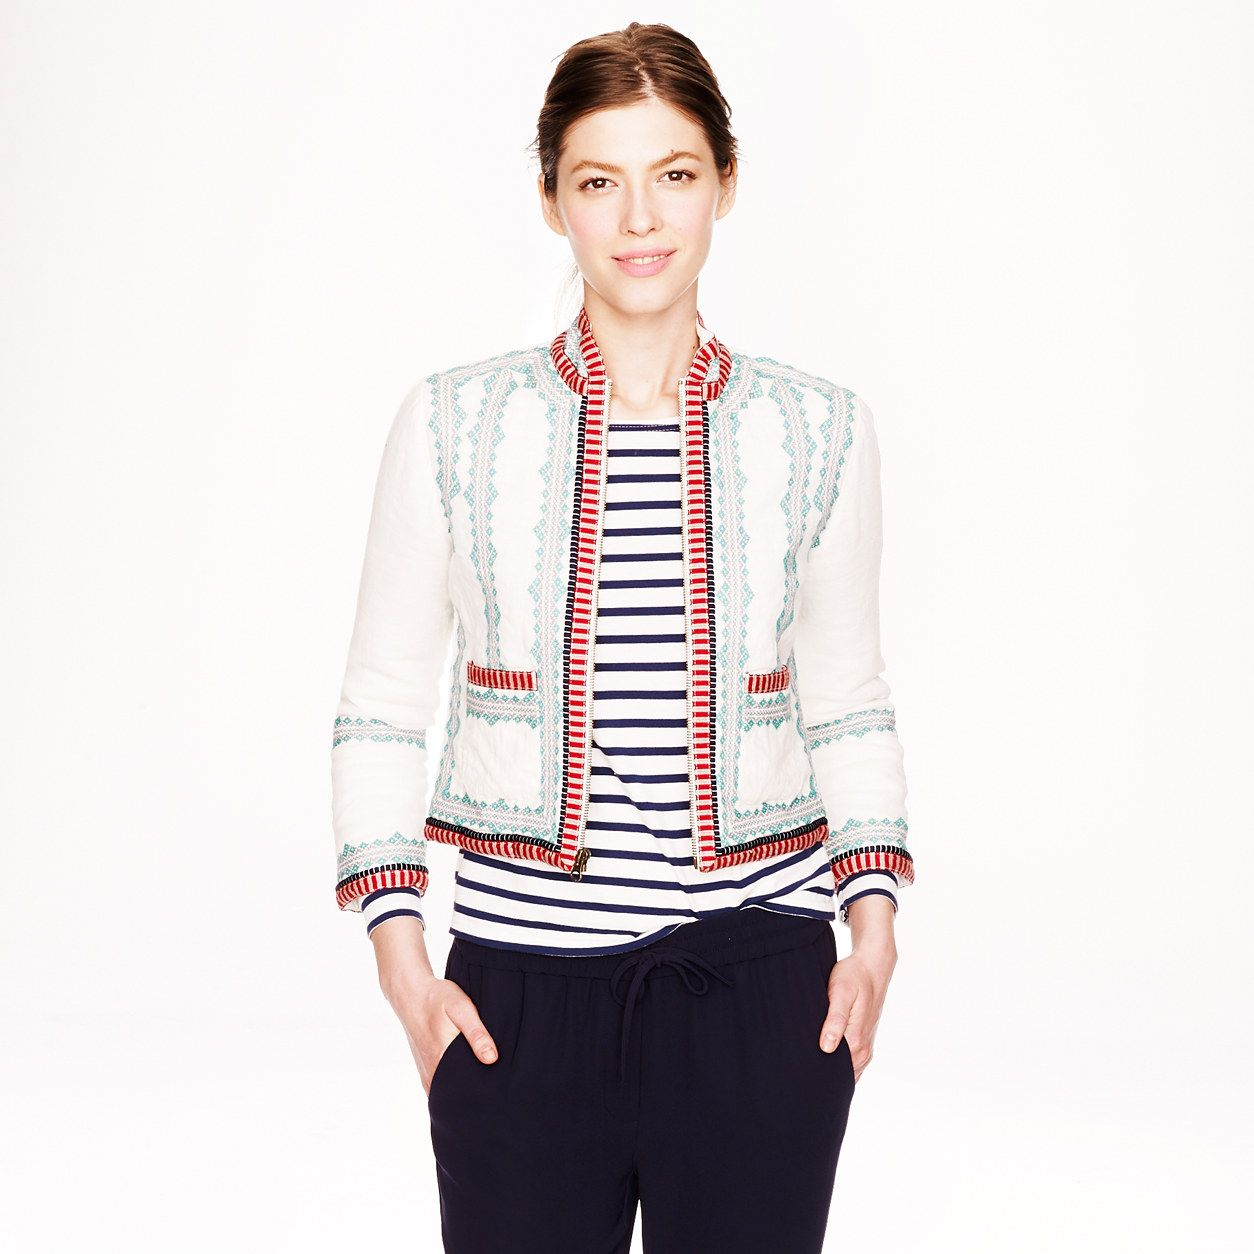 Collection embroidered linen jacket - outerwear & blazers - Women's collection - J.Crew #workstyle #workwear